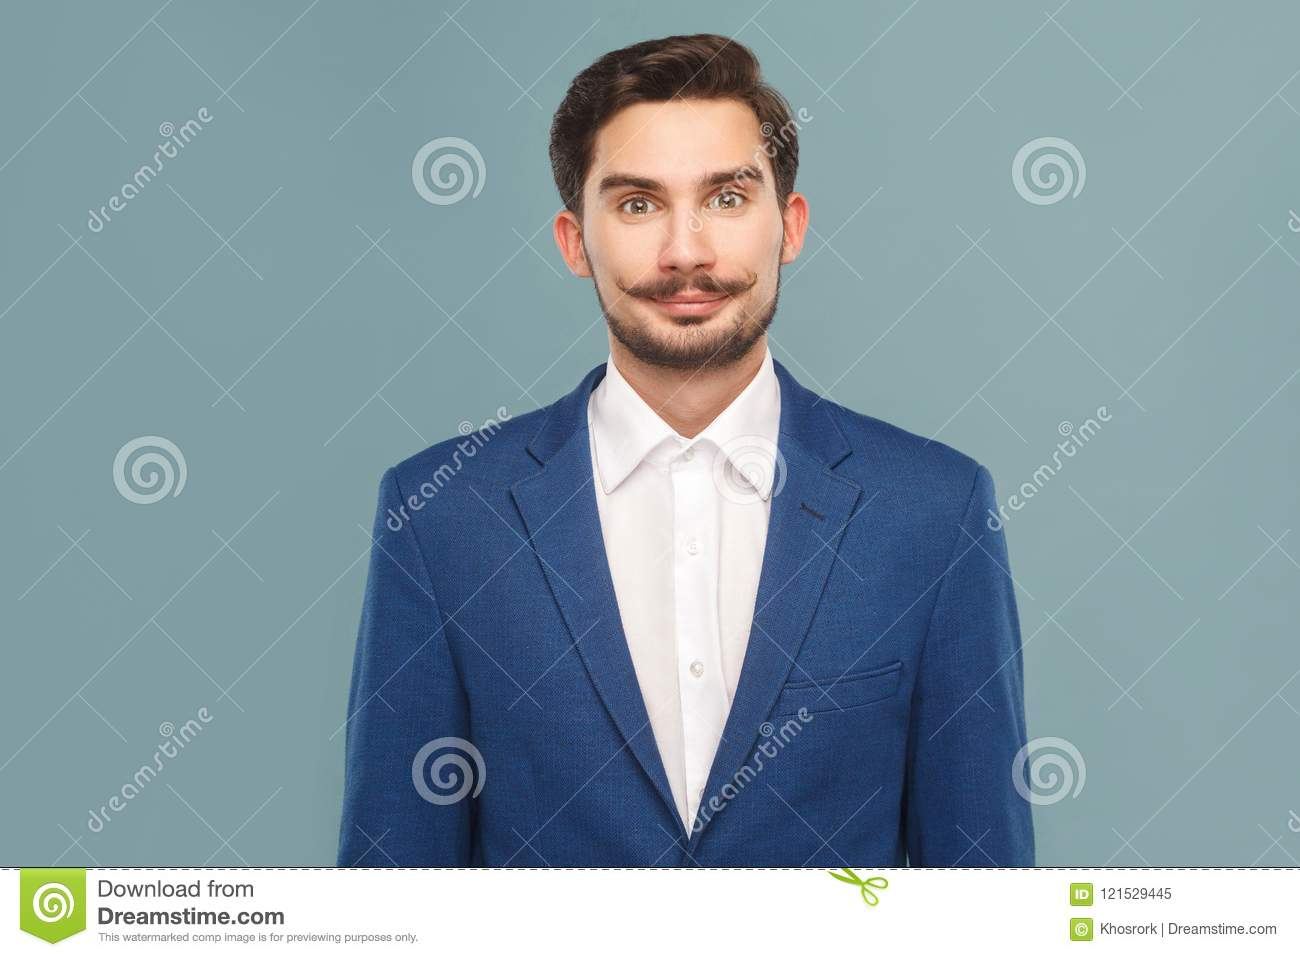 3bf22c84643 Portrait of smiley handsome bearded businessman with mustache in blue suit  and white shirt